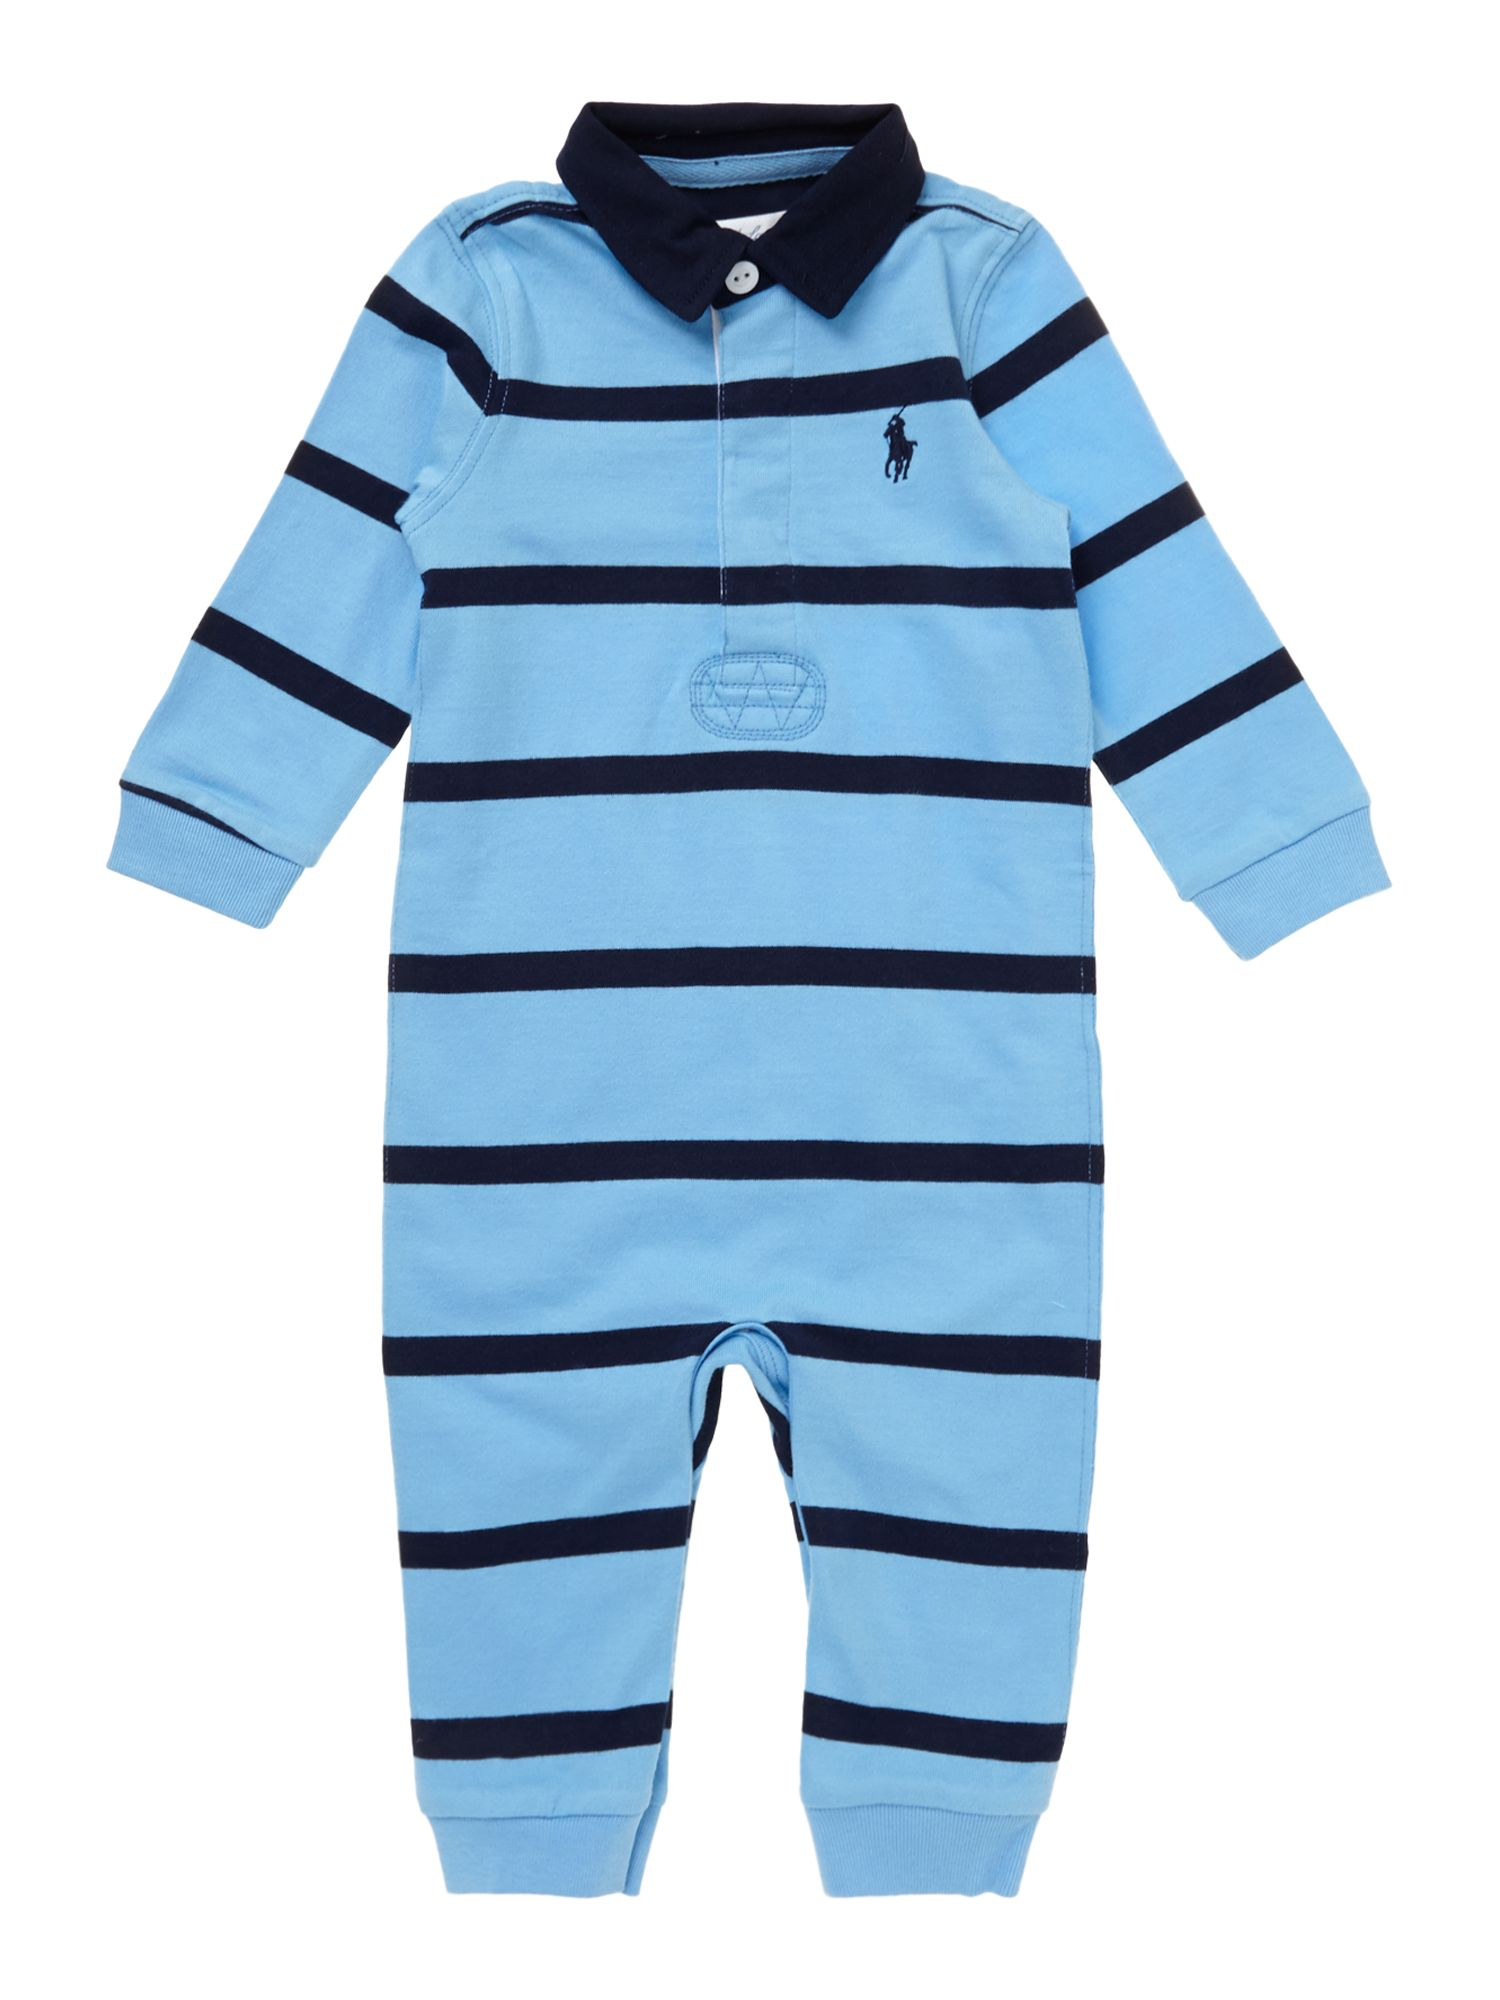 Baby boys striped rugby all in one